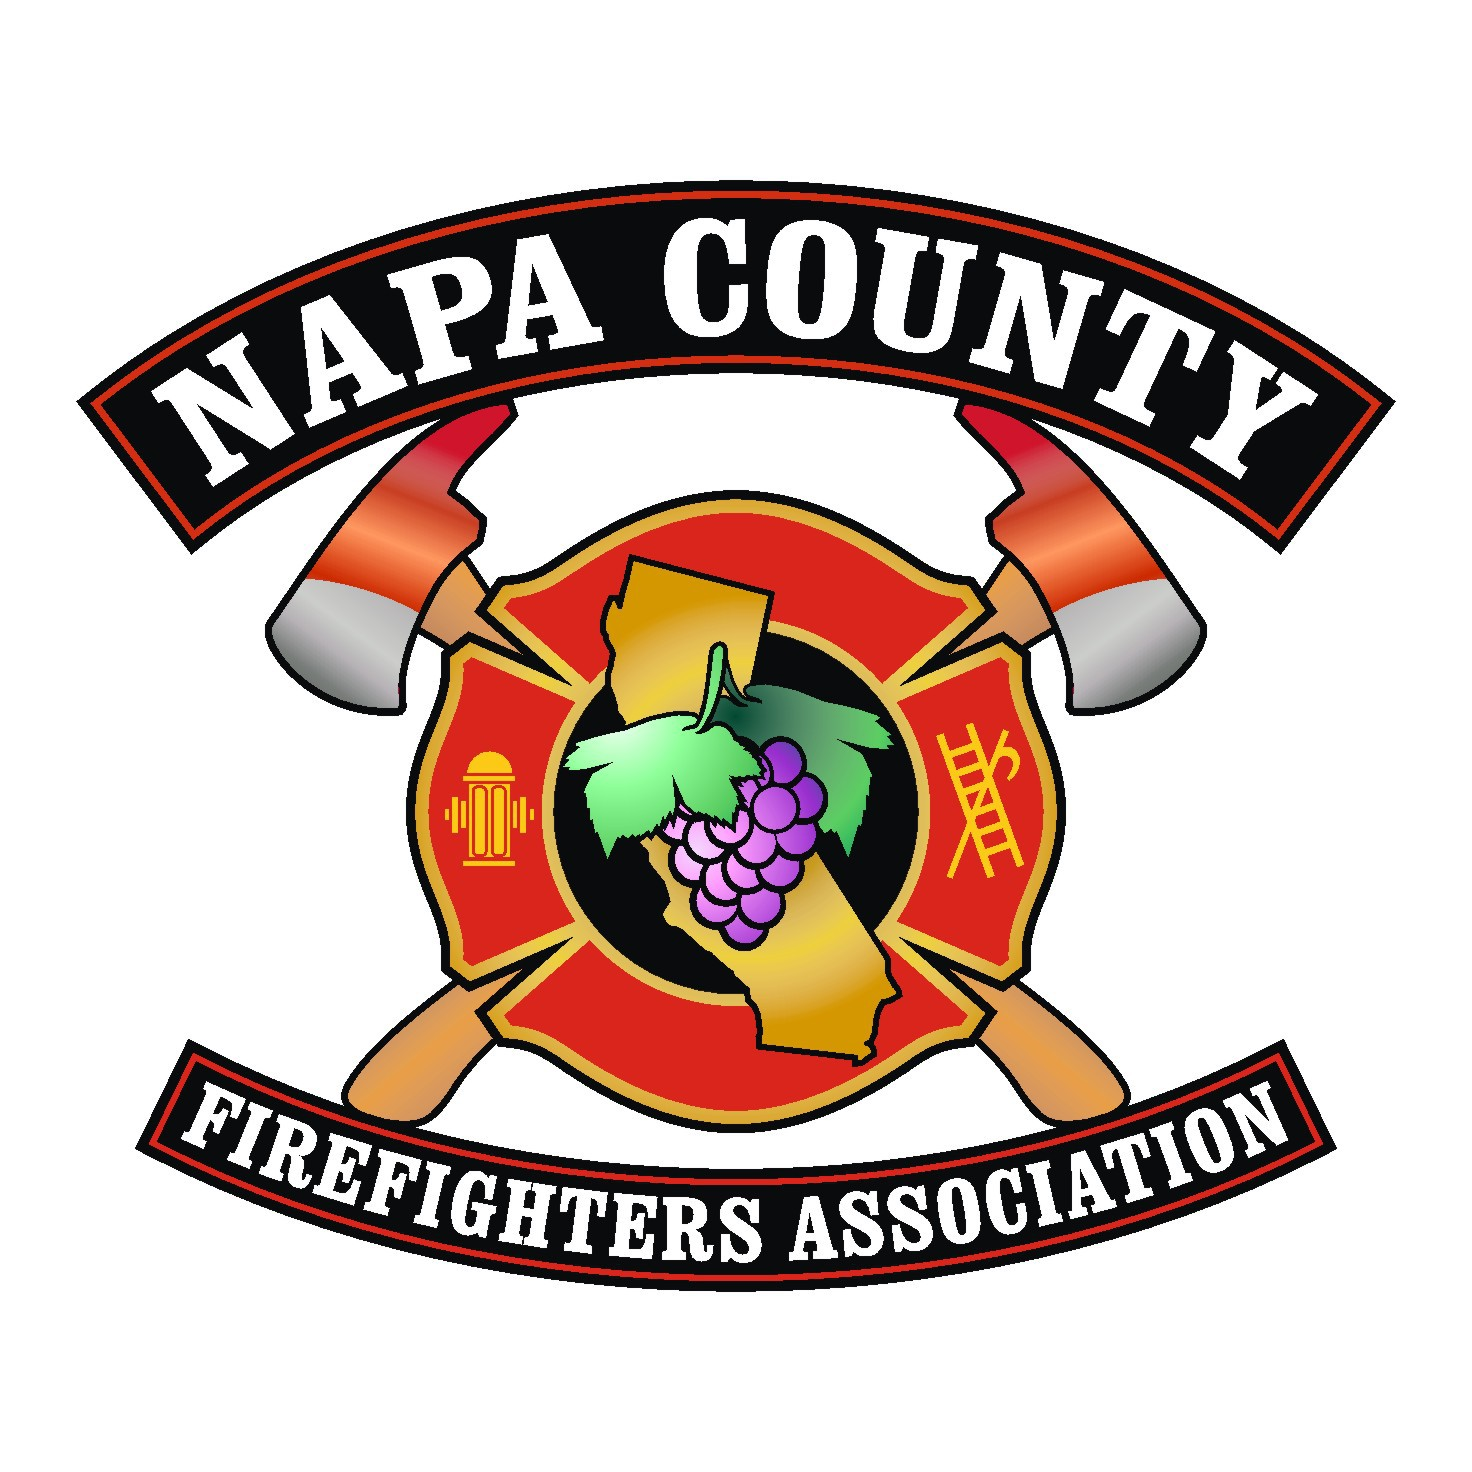 New logo wanted for Napa County Firefighters Association